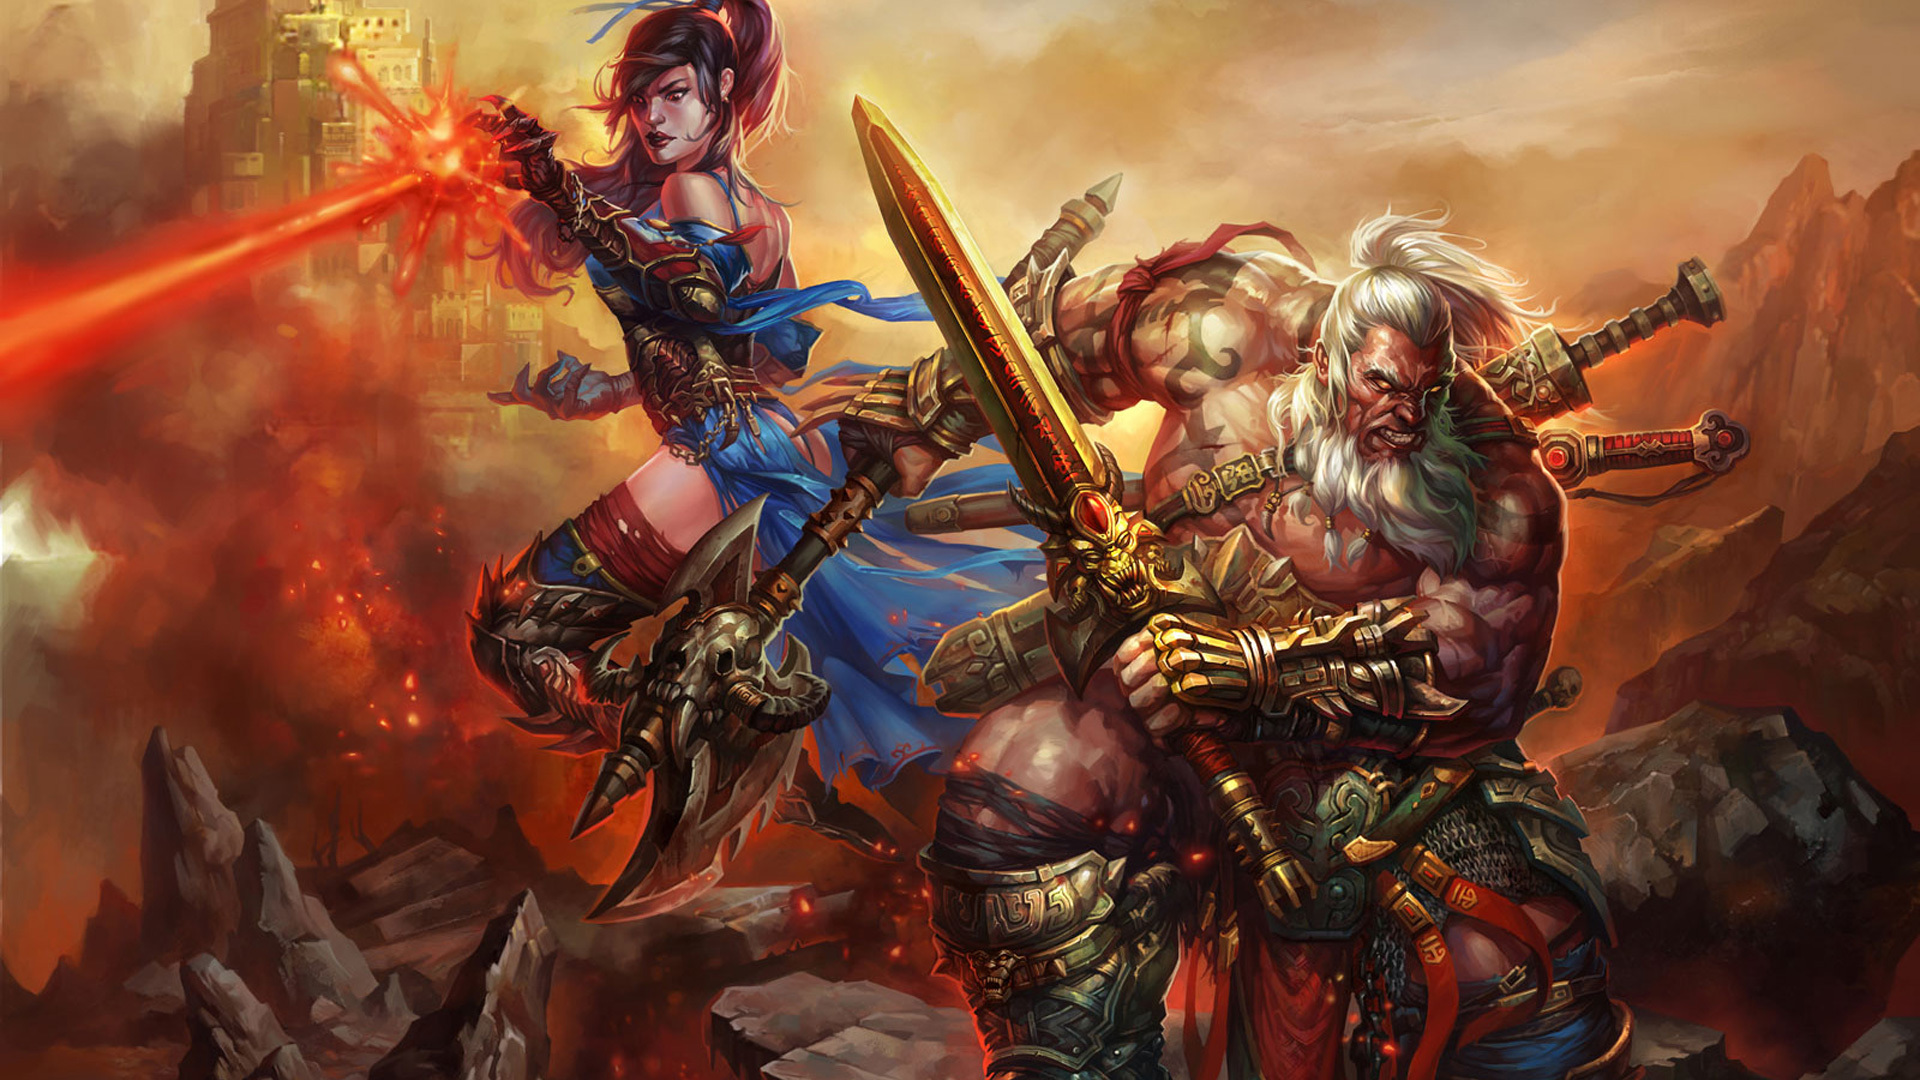 Diablo III barbarian and mage wallpapers and images   wallpapers 1920x1080